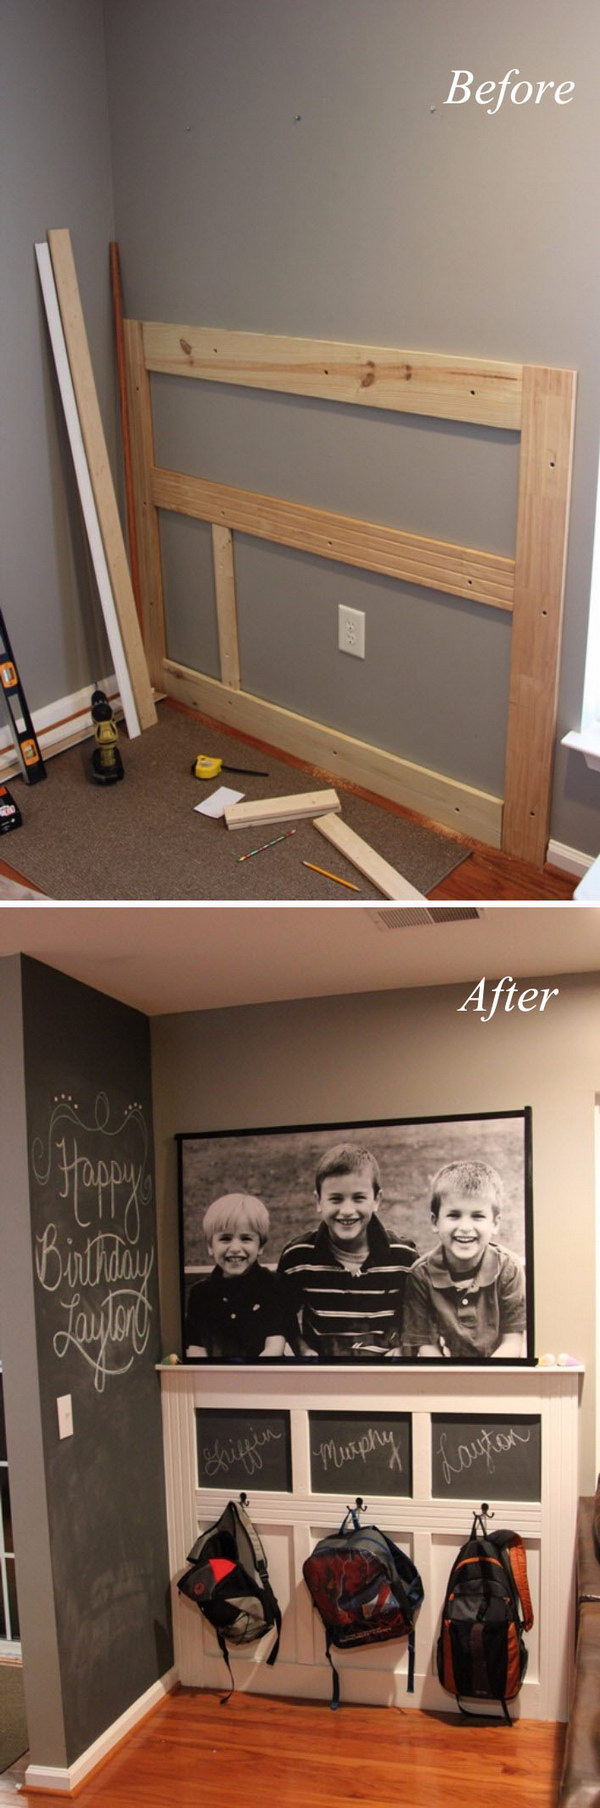 Small Foyer Makeovers : Amazing entryway makeover ideas and tutorials hative